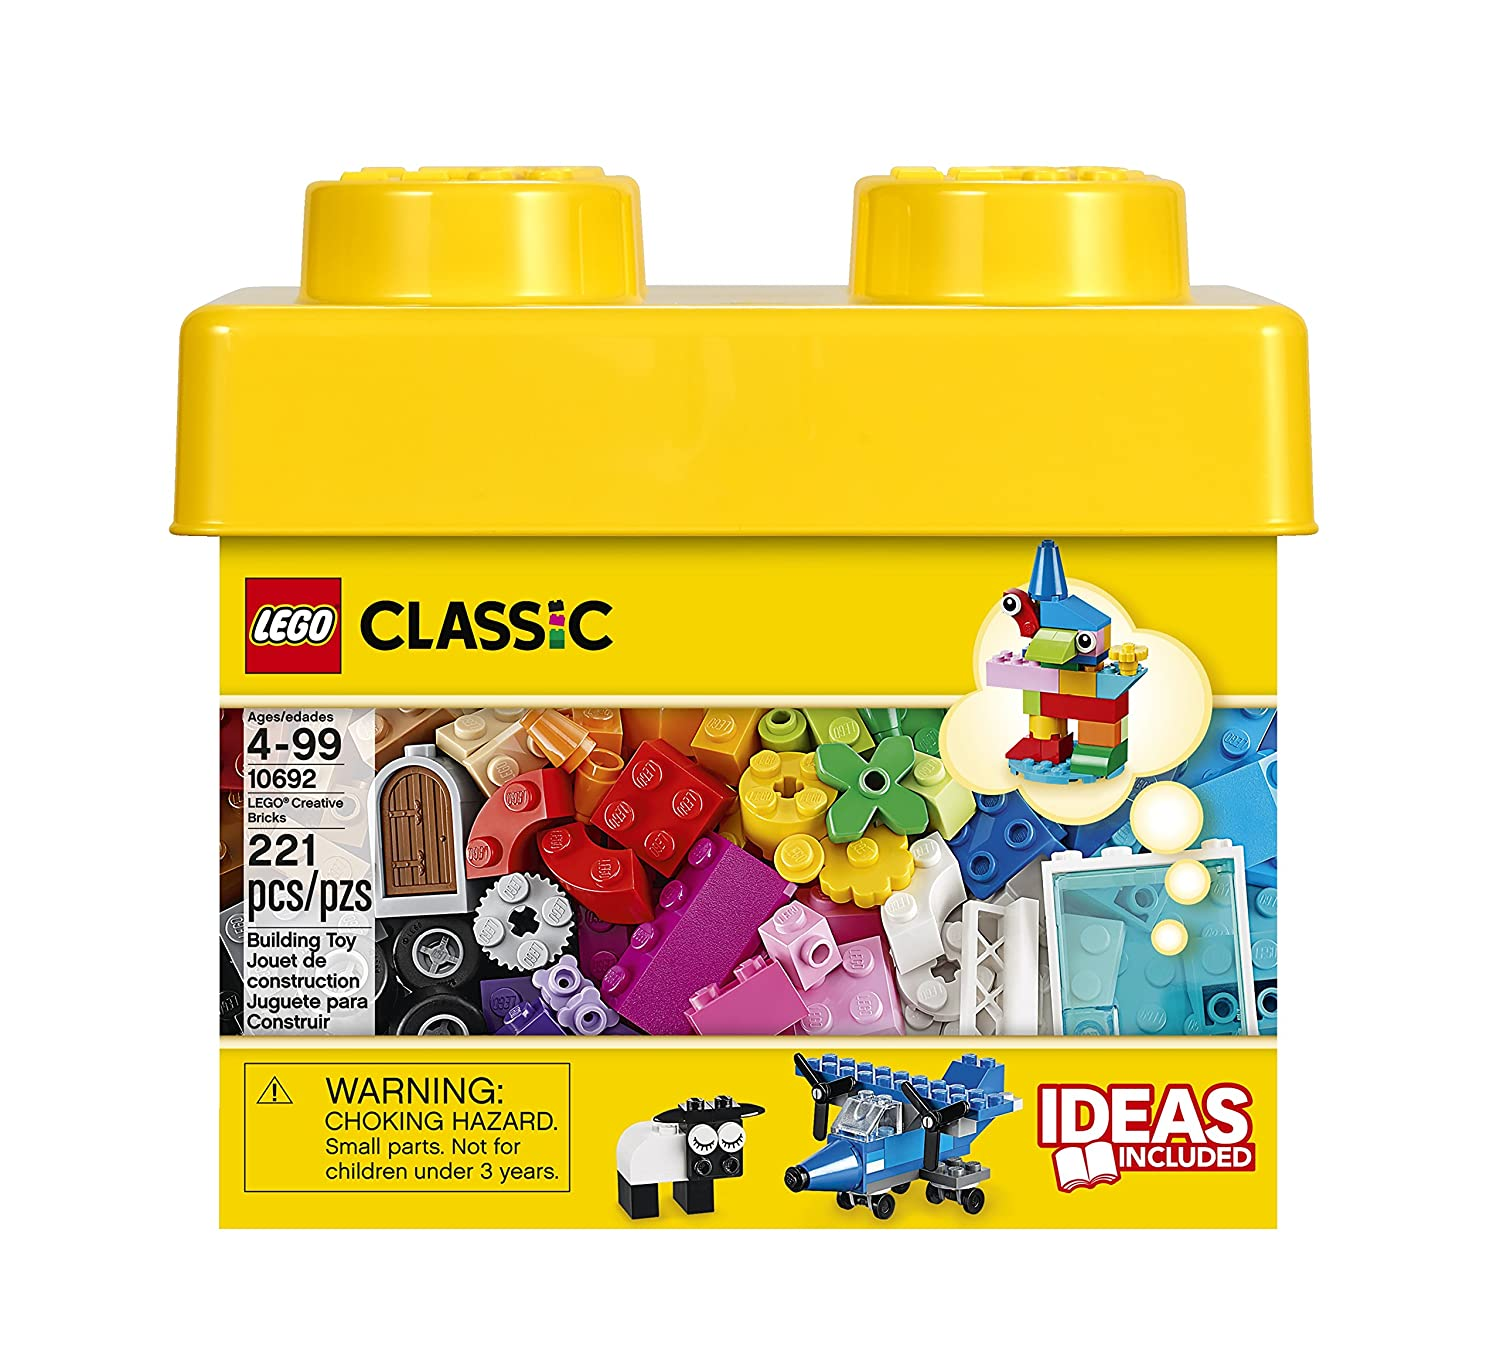 Lego classic creative bricks new free shipping for Modele maison lego classic